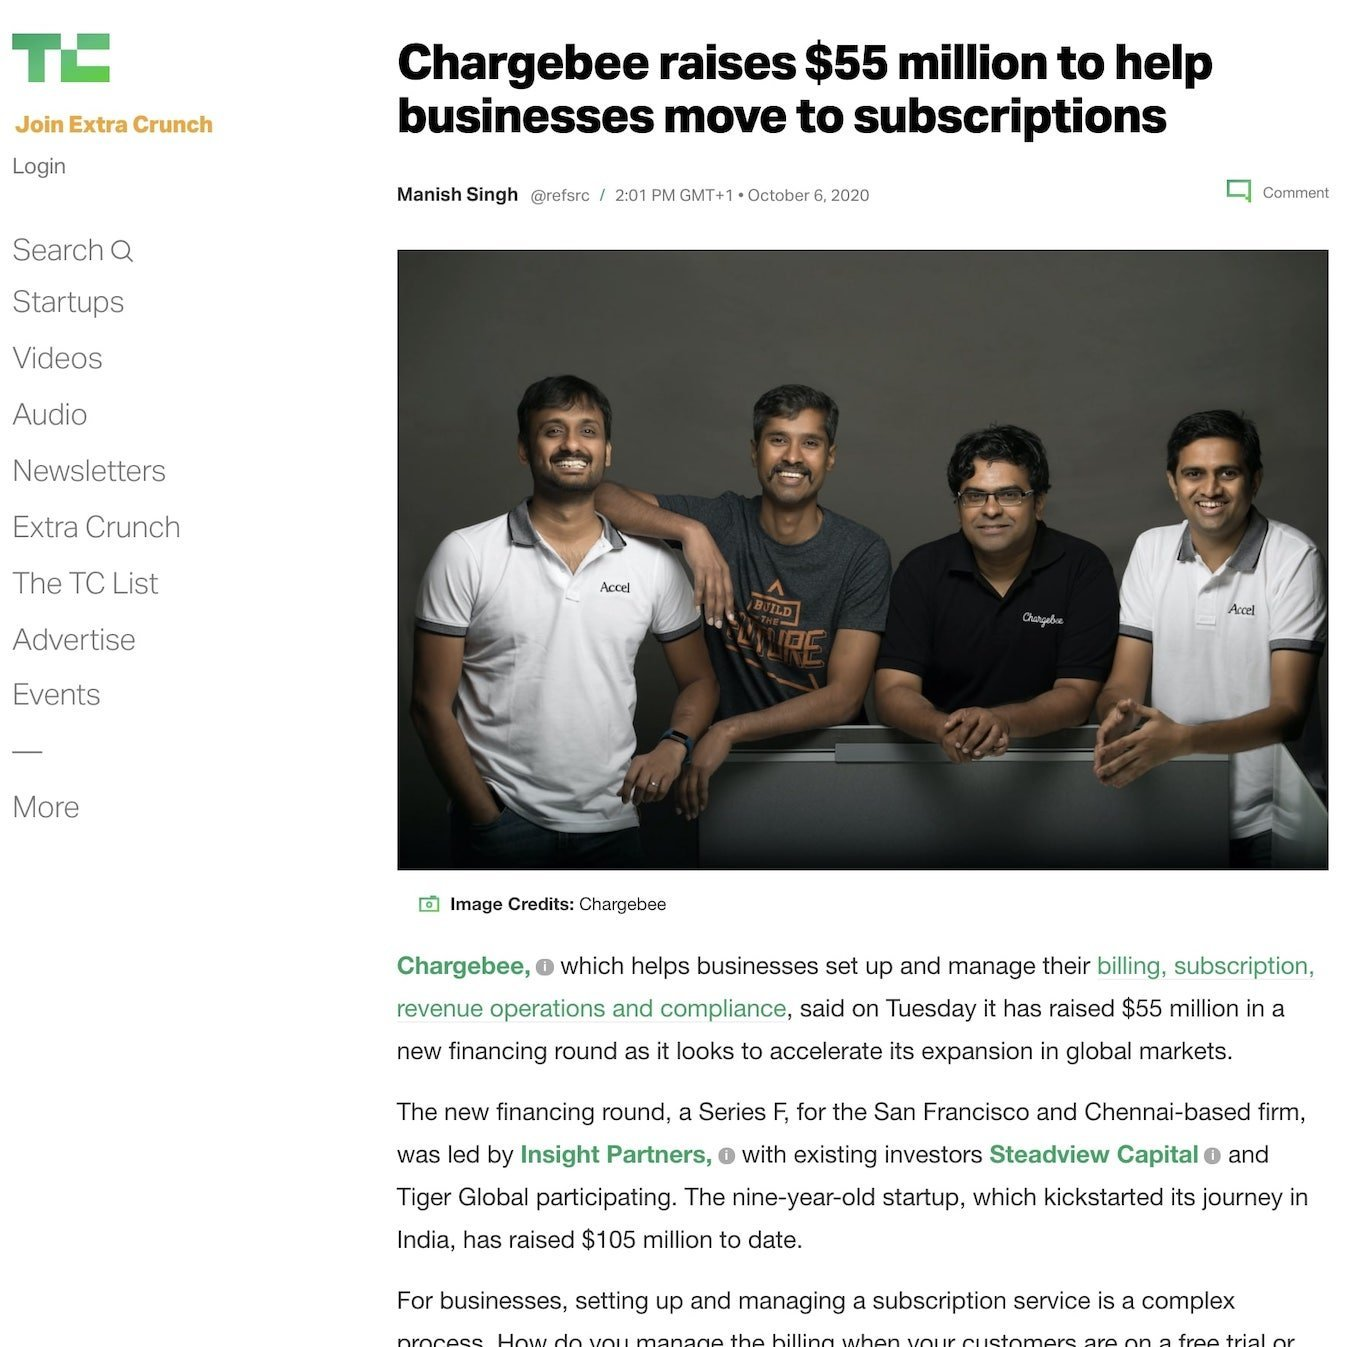 Article published at TechCrunch for Chargebee, thanks to our high tech PR agency